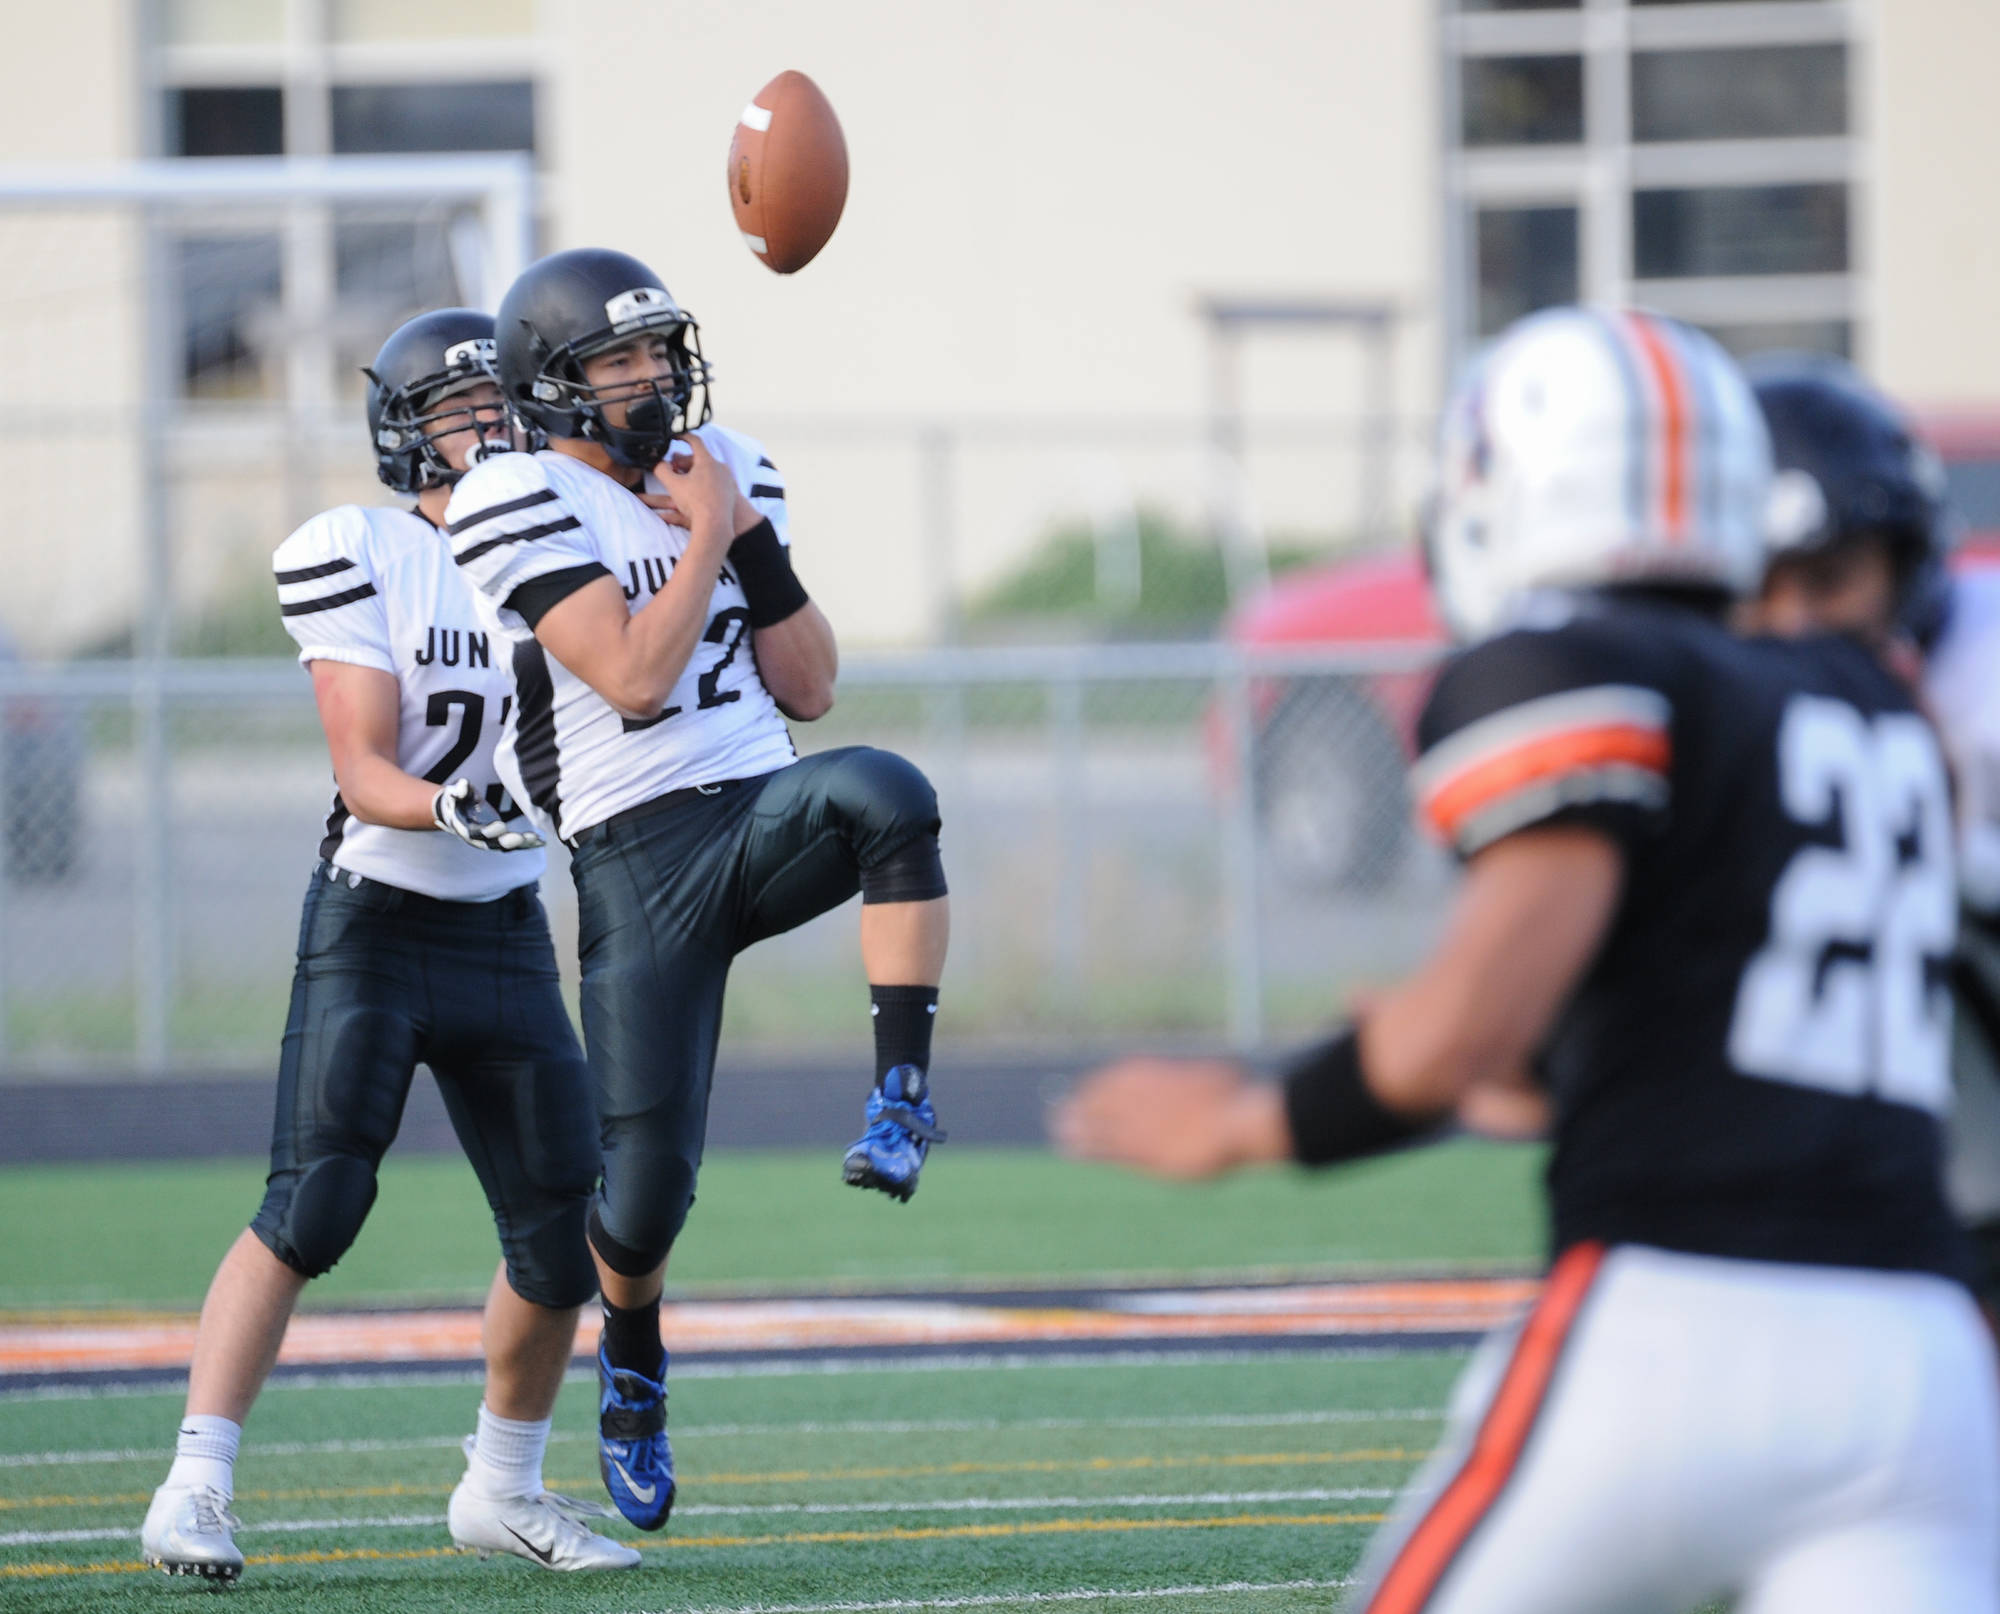 Juneau's Ali Beya has difficulty handling a kickoff in front of teammate Cody Morehouse. (Michael Dinneen | For the Juneau Empire)